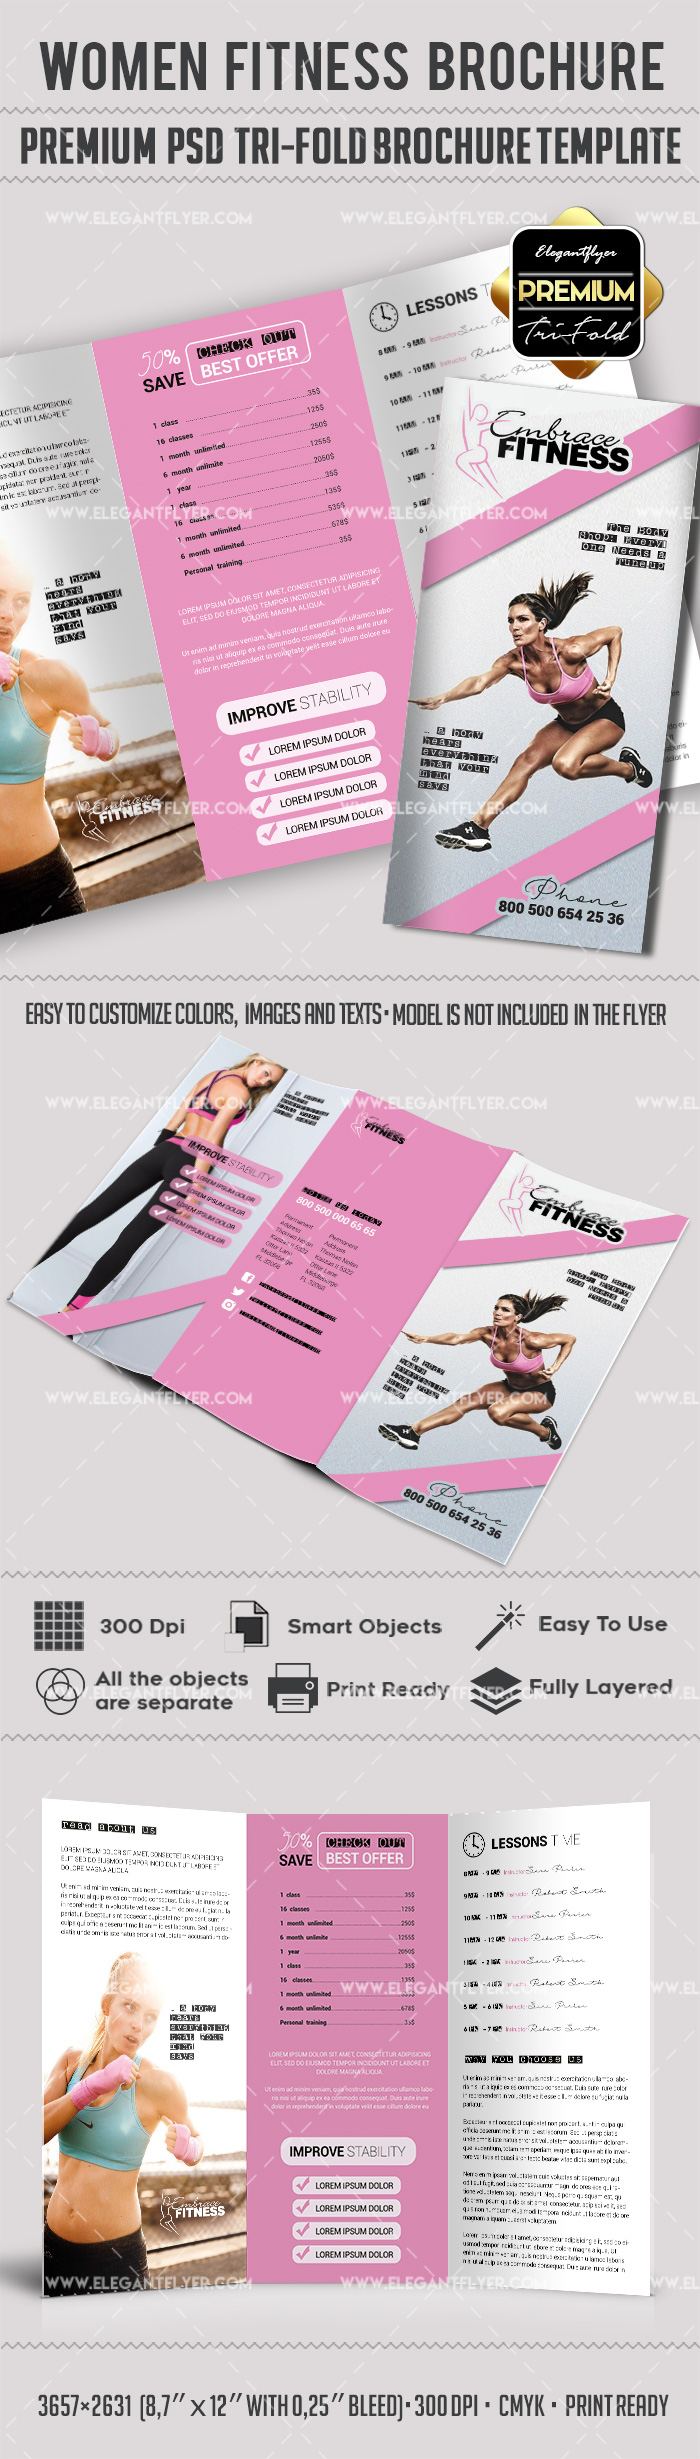 Brochure for Women Fitness Template